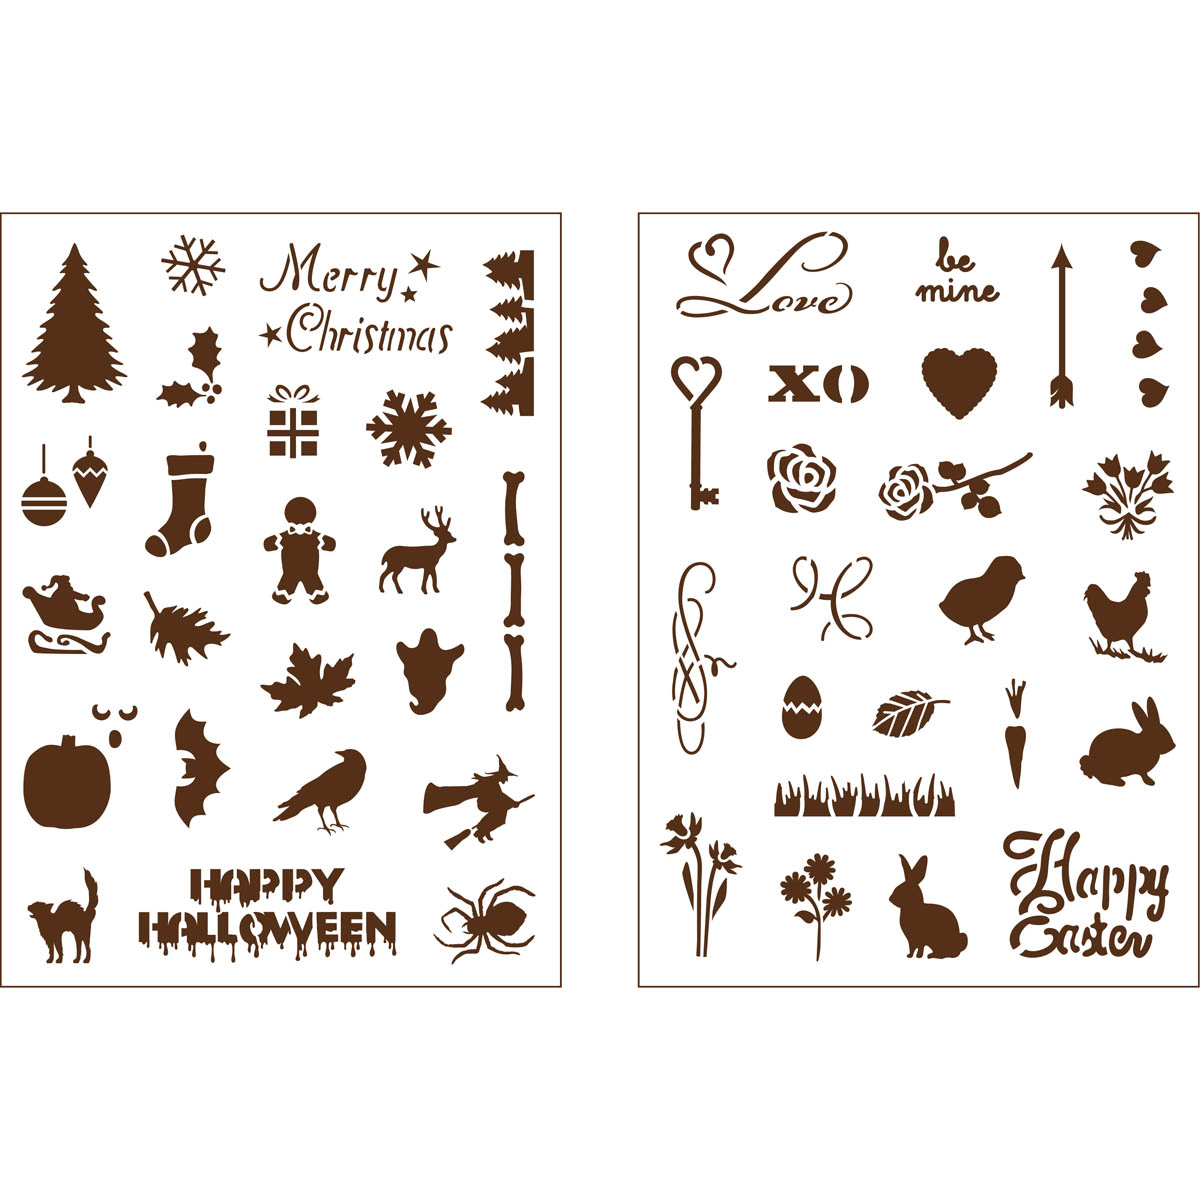 Martha Stewart ® Adhesive Stencil - Holiday Icons II - 32304